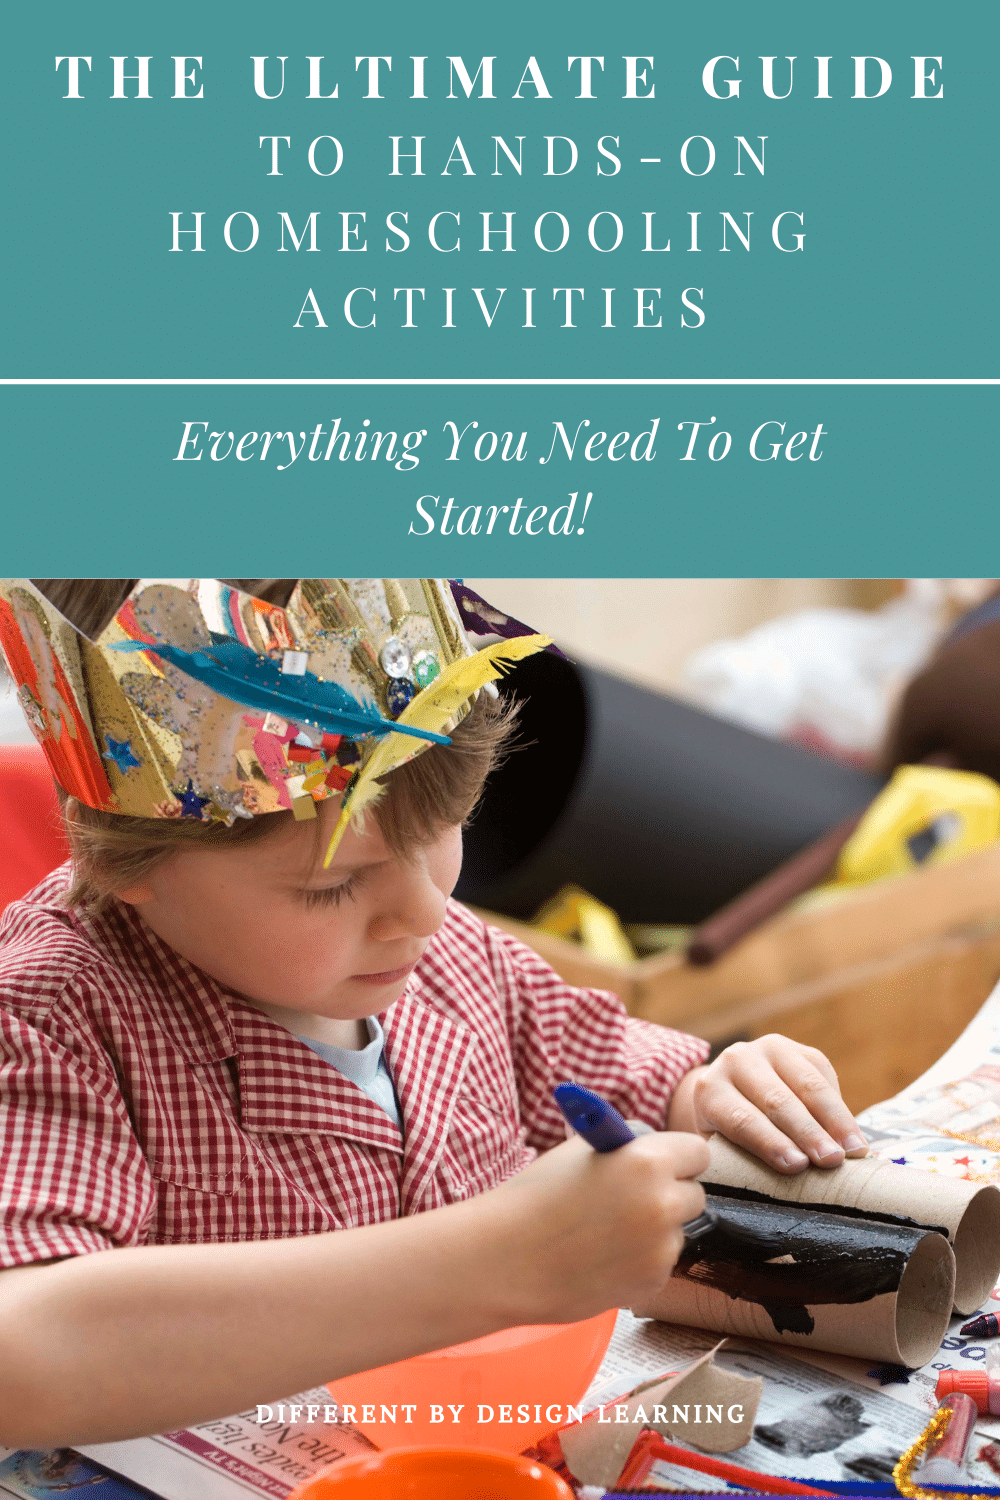 The Ultimate Guide To Hands-On Homeschooling Activities